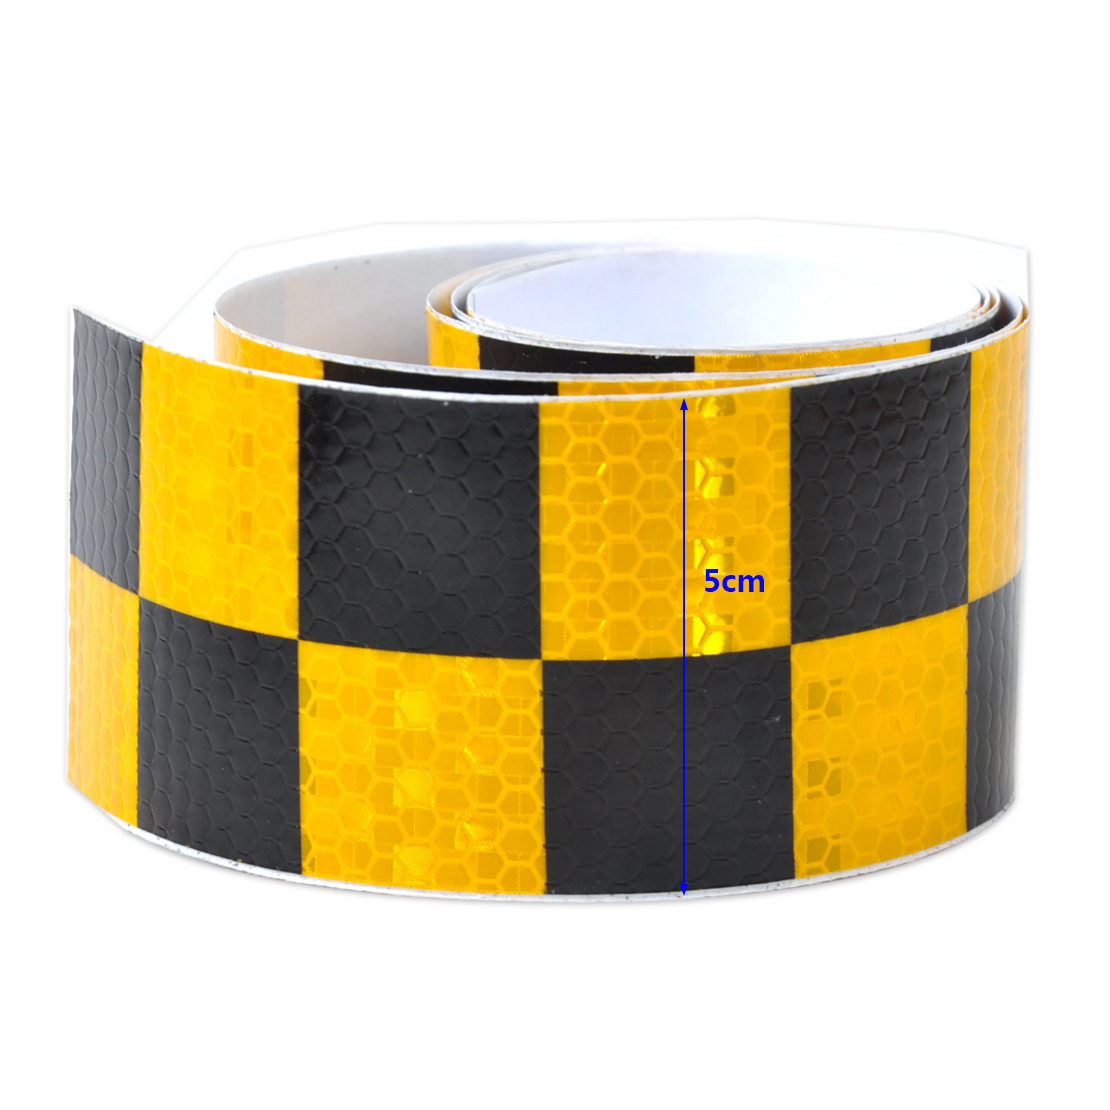 New Reflective Safety Warning Conspicuity Tape Marking